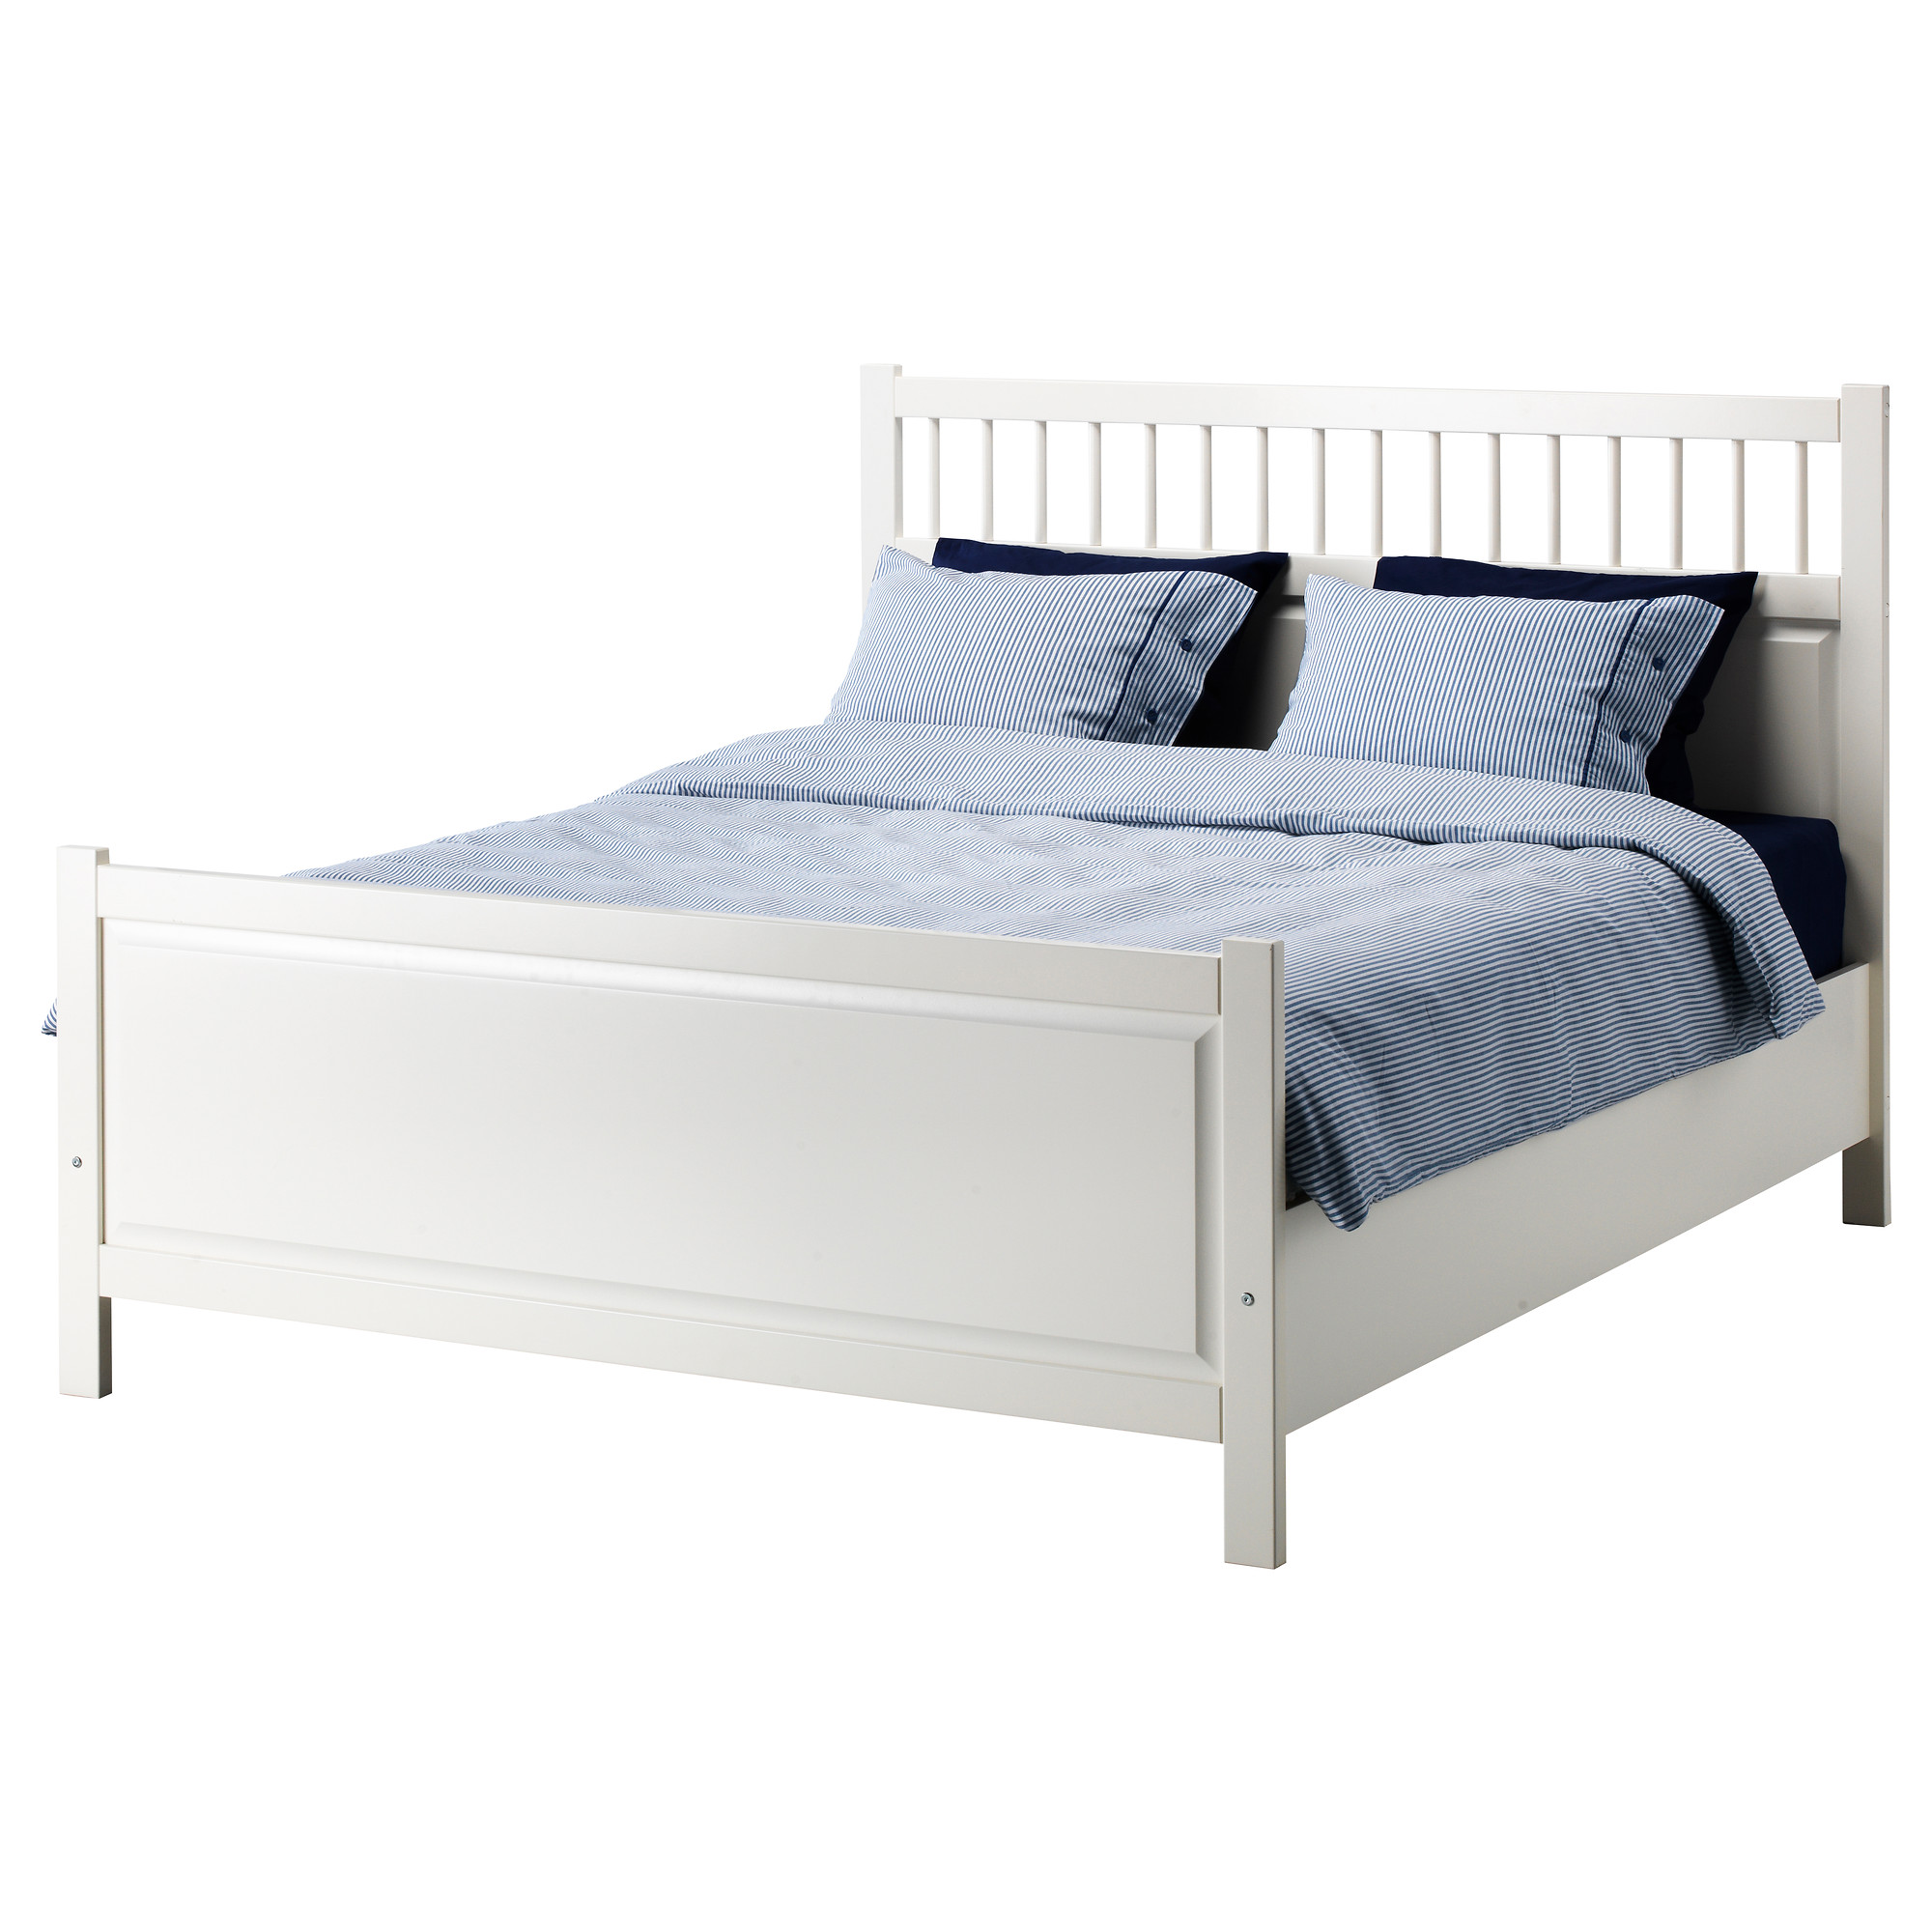 Awesome ikea king platform bed homesfeed Awesome bed frames